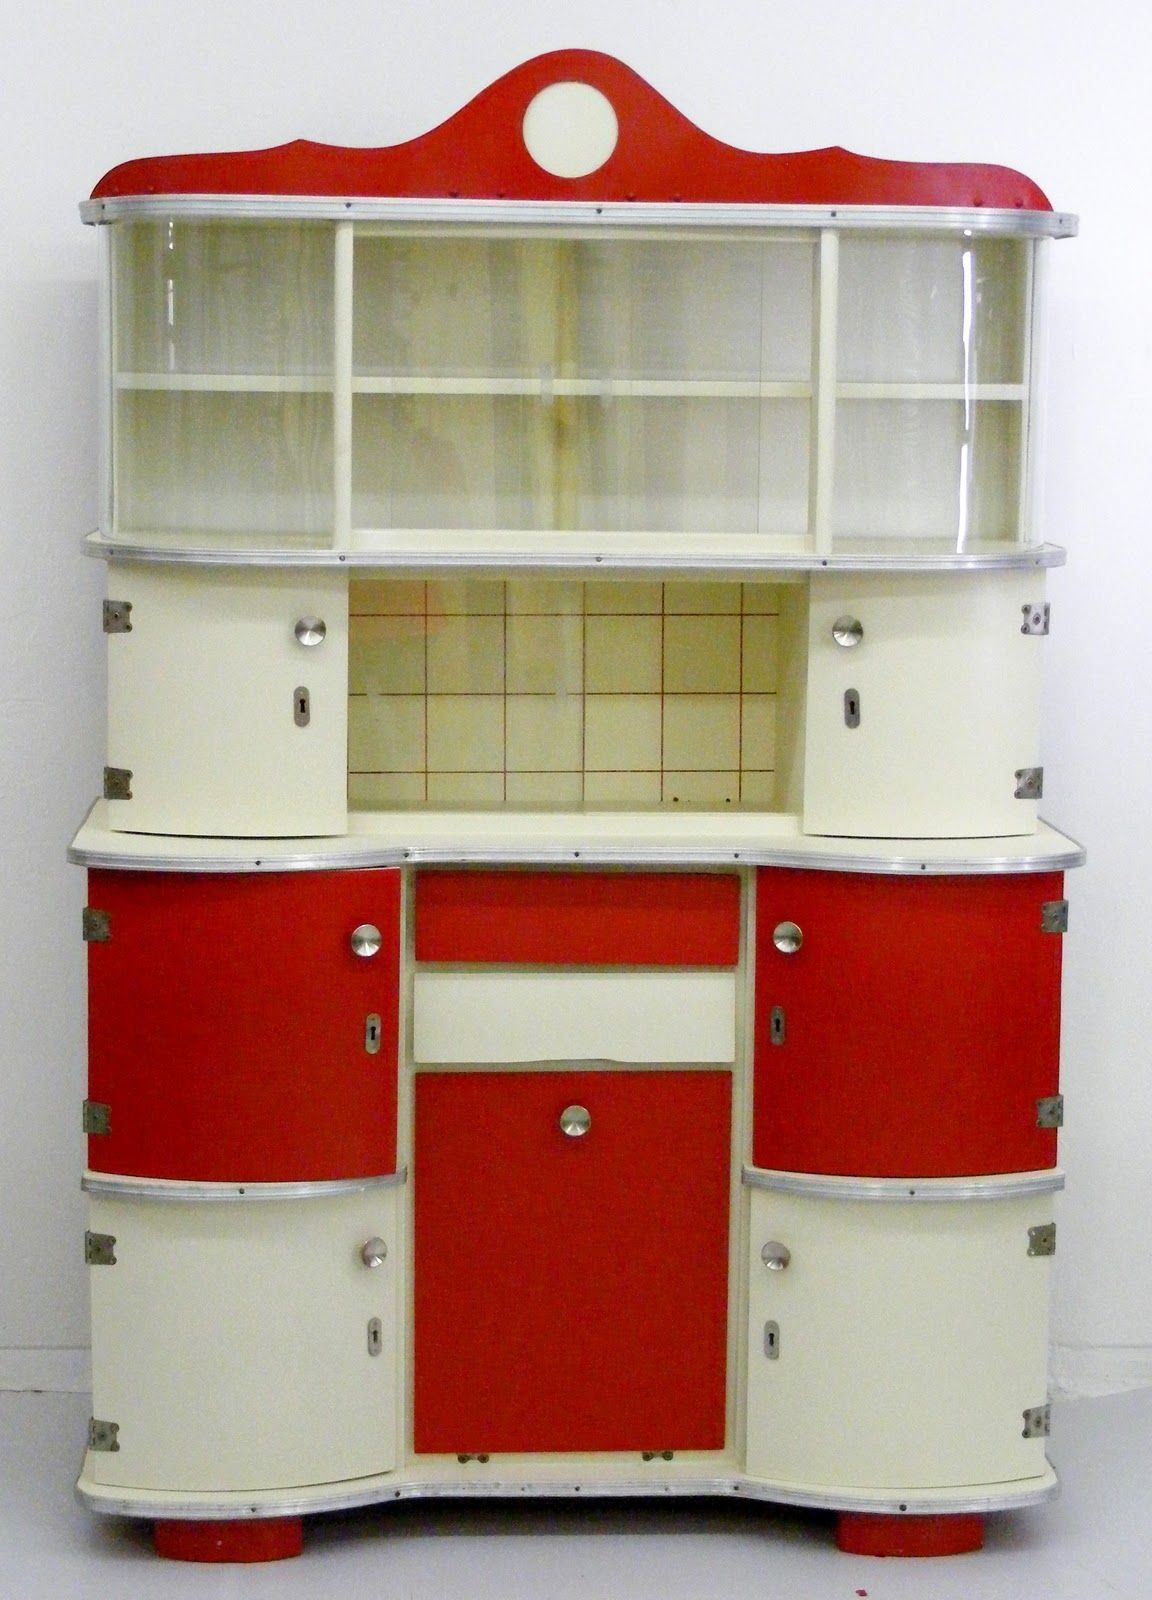 Red Retro Kitchen Appliances , Red Kitchen Cabinets , Black And ...